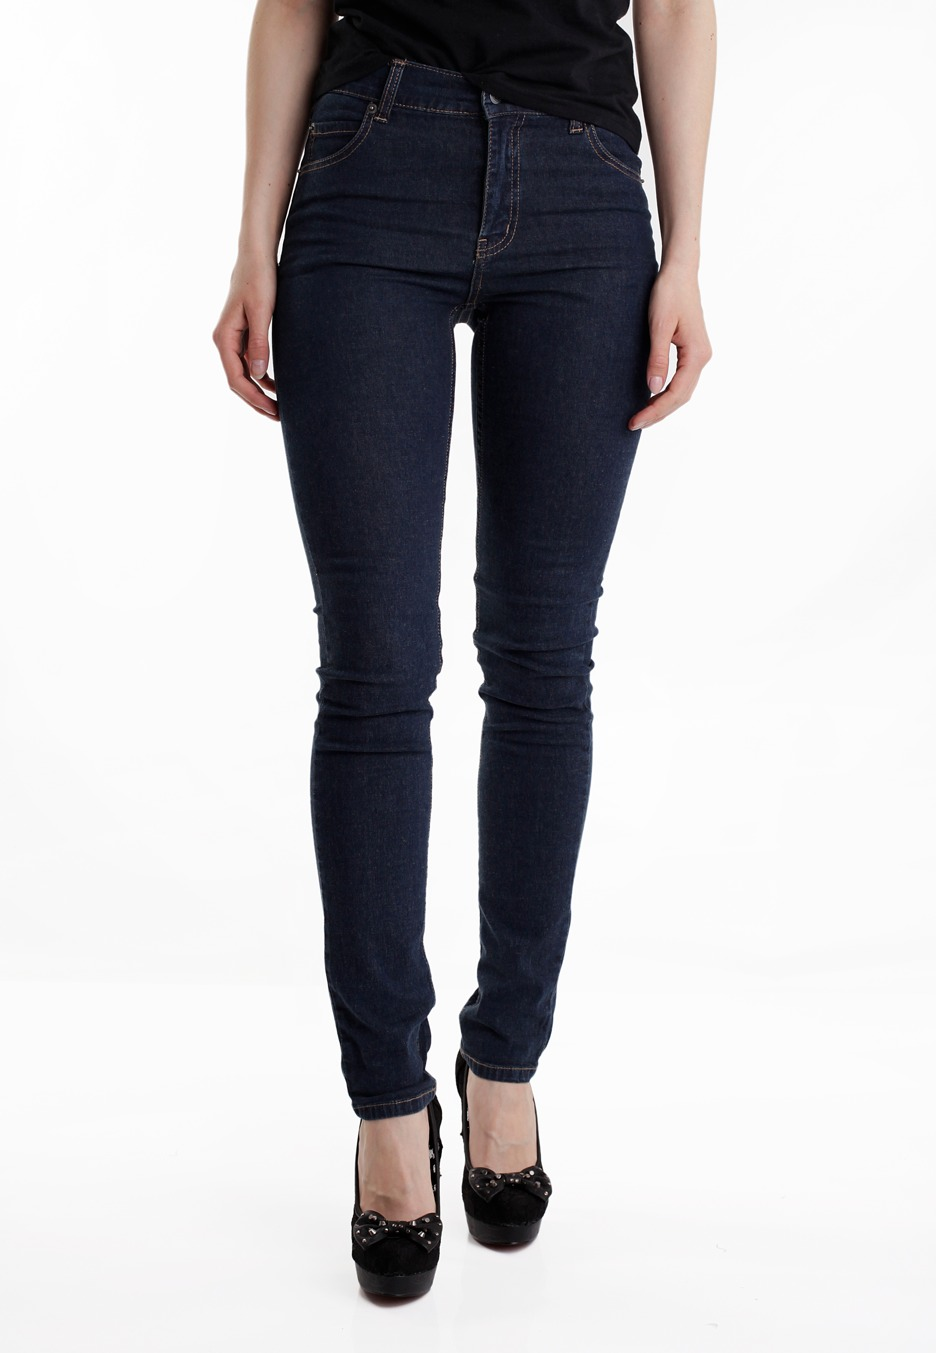 Sep 25, · Cheap Monday Skinny Fit - Tight very stretch Onewash - Men RAG nice stuff. Loading Unsubscribe from RAG nice stuff? Cancel Unsubscribe. Working Subscribe Subscribed Unsubscribe K.